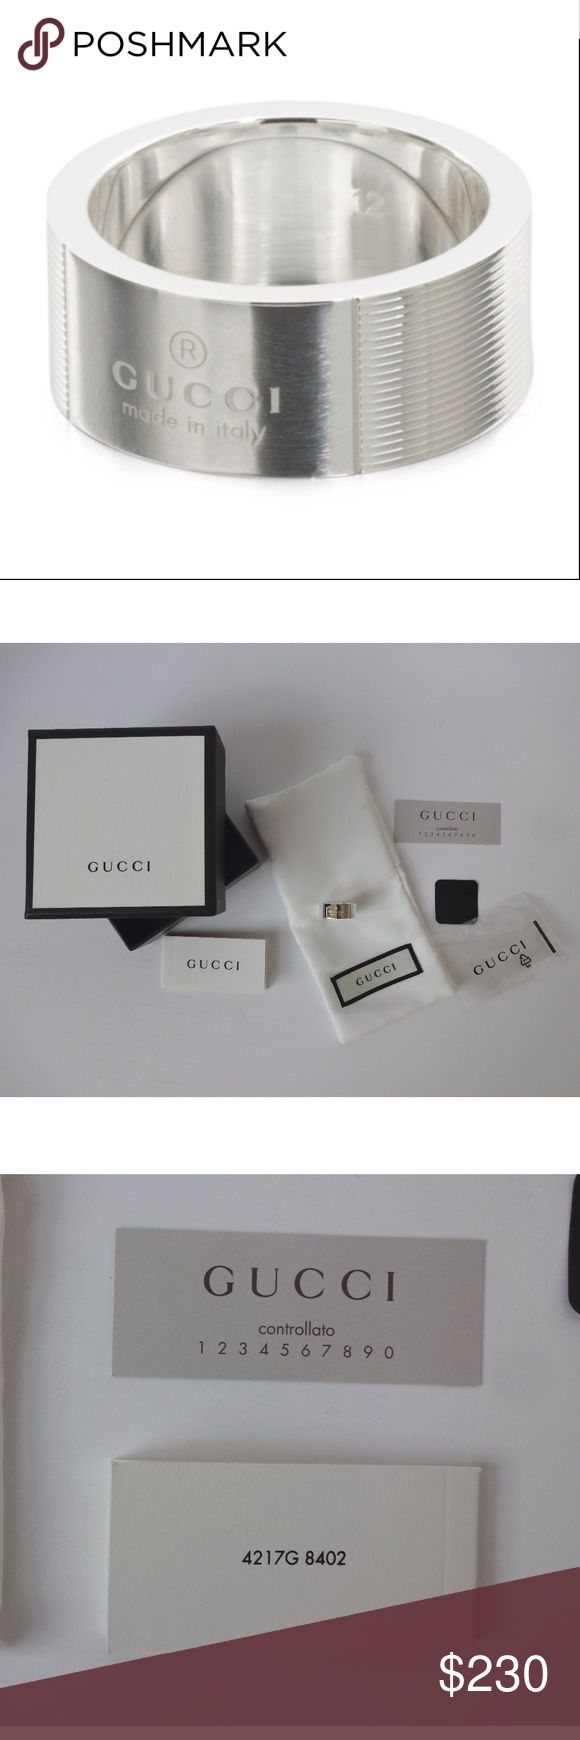 Gucci Sterling Silver Trademark Striped Ring Sz 7 Gucci Sterling Silver Trademark Striped Ring Sz 7  This ring is actually unisex. New in box, comes with authenticity card. Came in sealed plastic bag, was taken out just to photograph for this listing.  Width: 5/16 inch or 8 mm Gucci Jewelry Rings